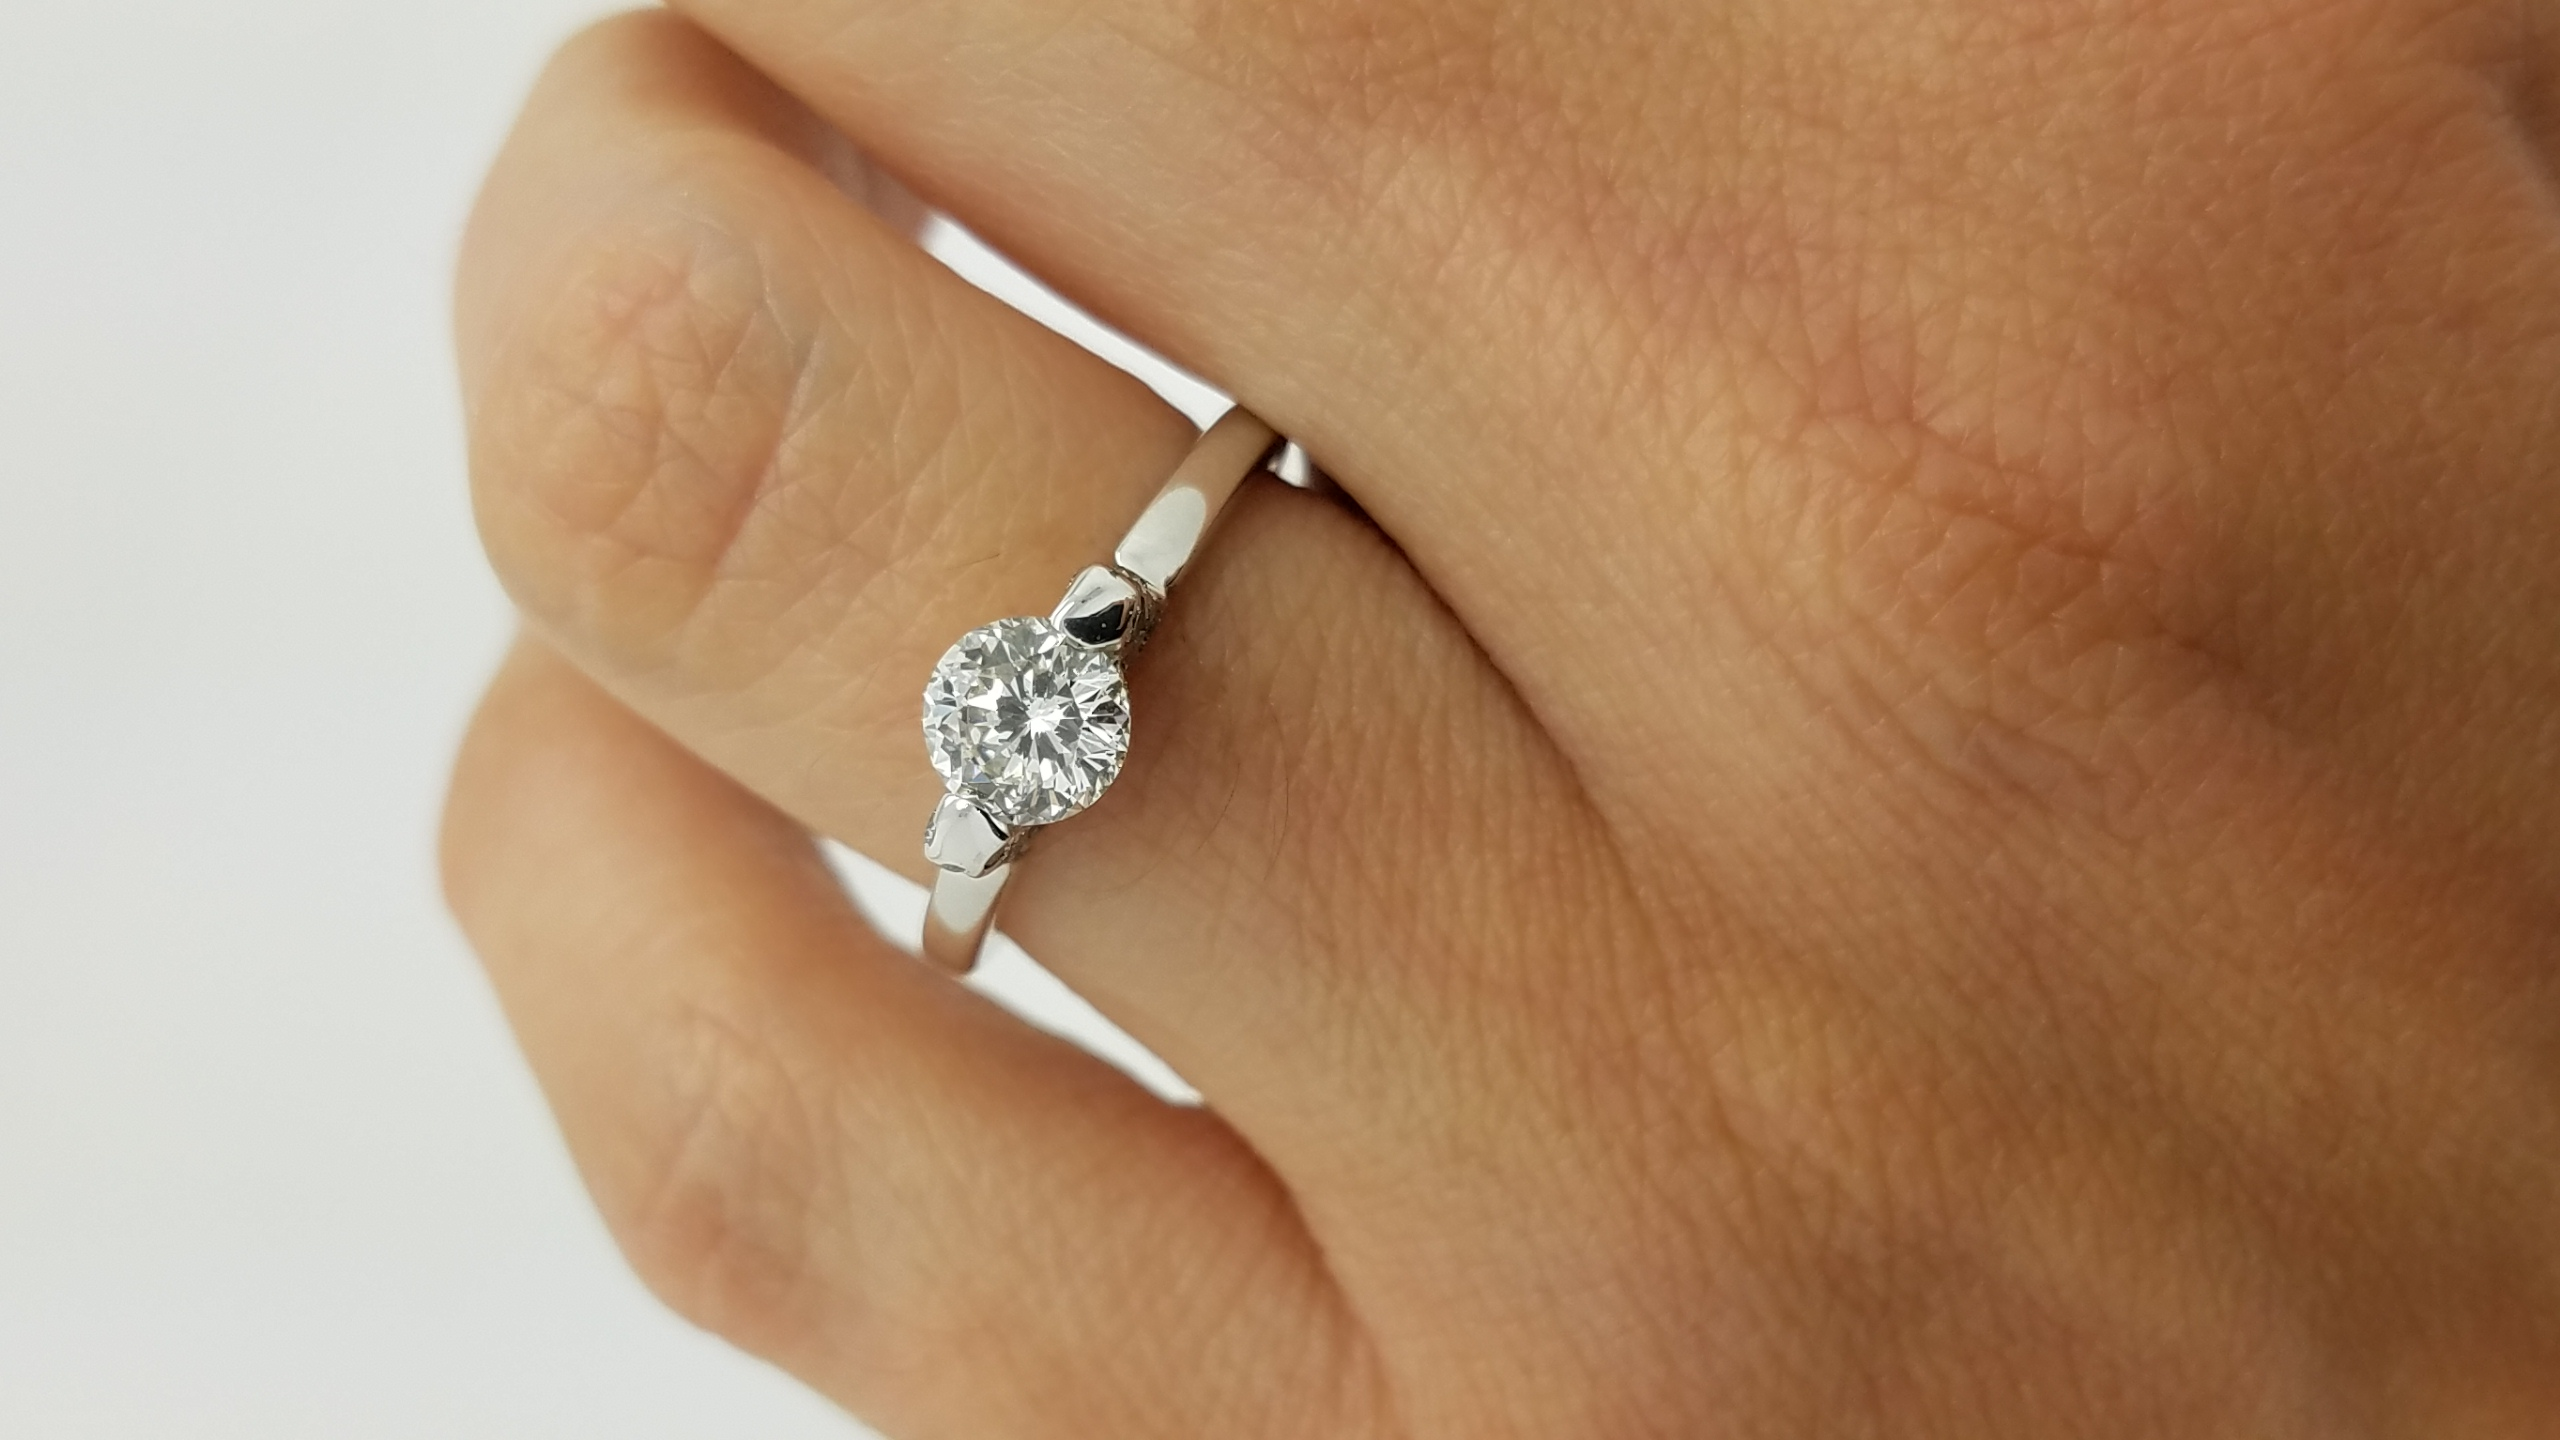 18KWhite GoldFloating0.74+0.30ct.RoundCutDiaGVS2Flush-SetSolitaire with AccentsEngagement-Ring